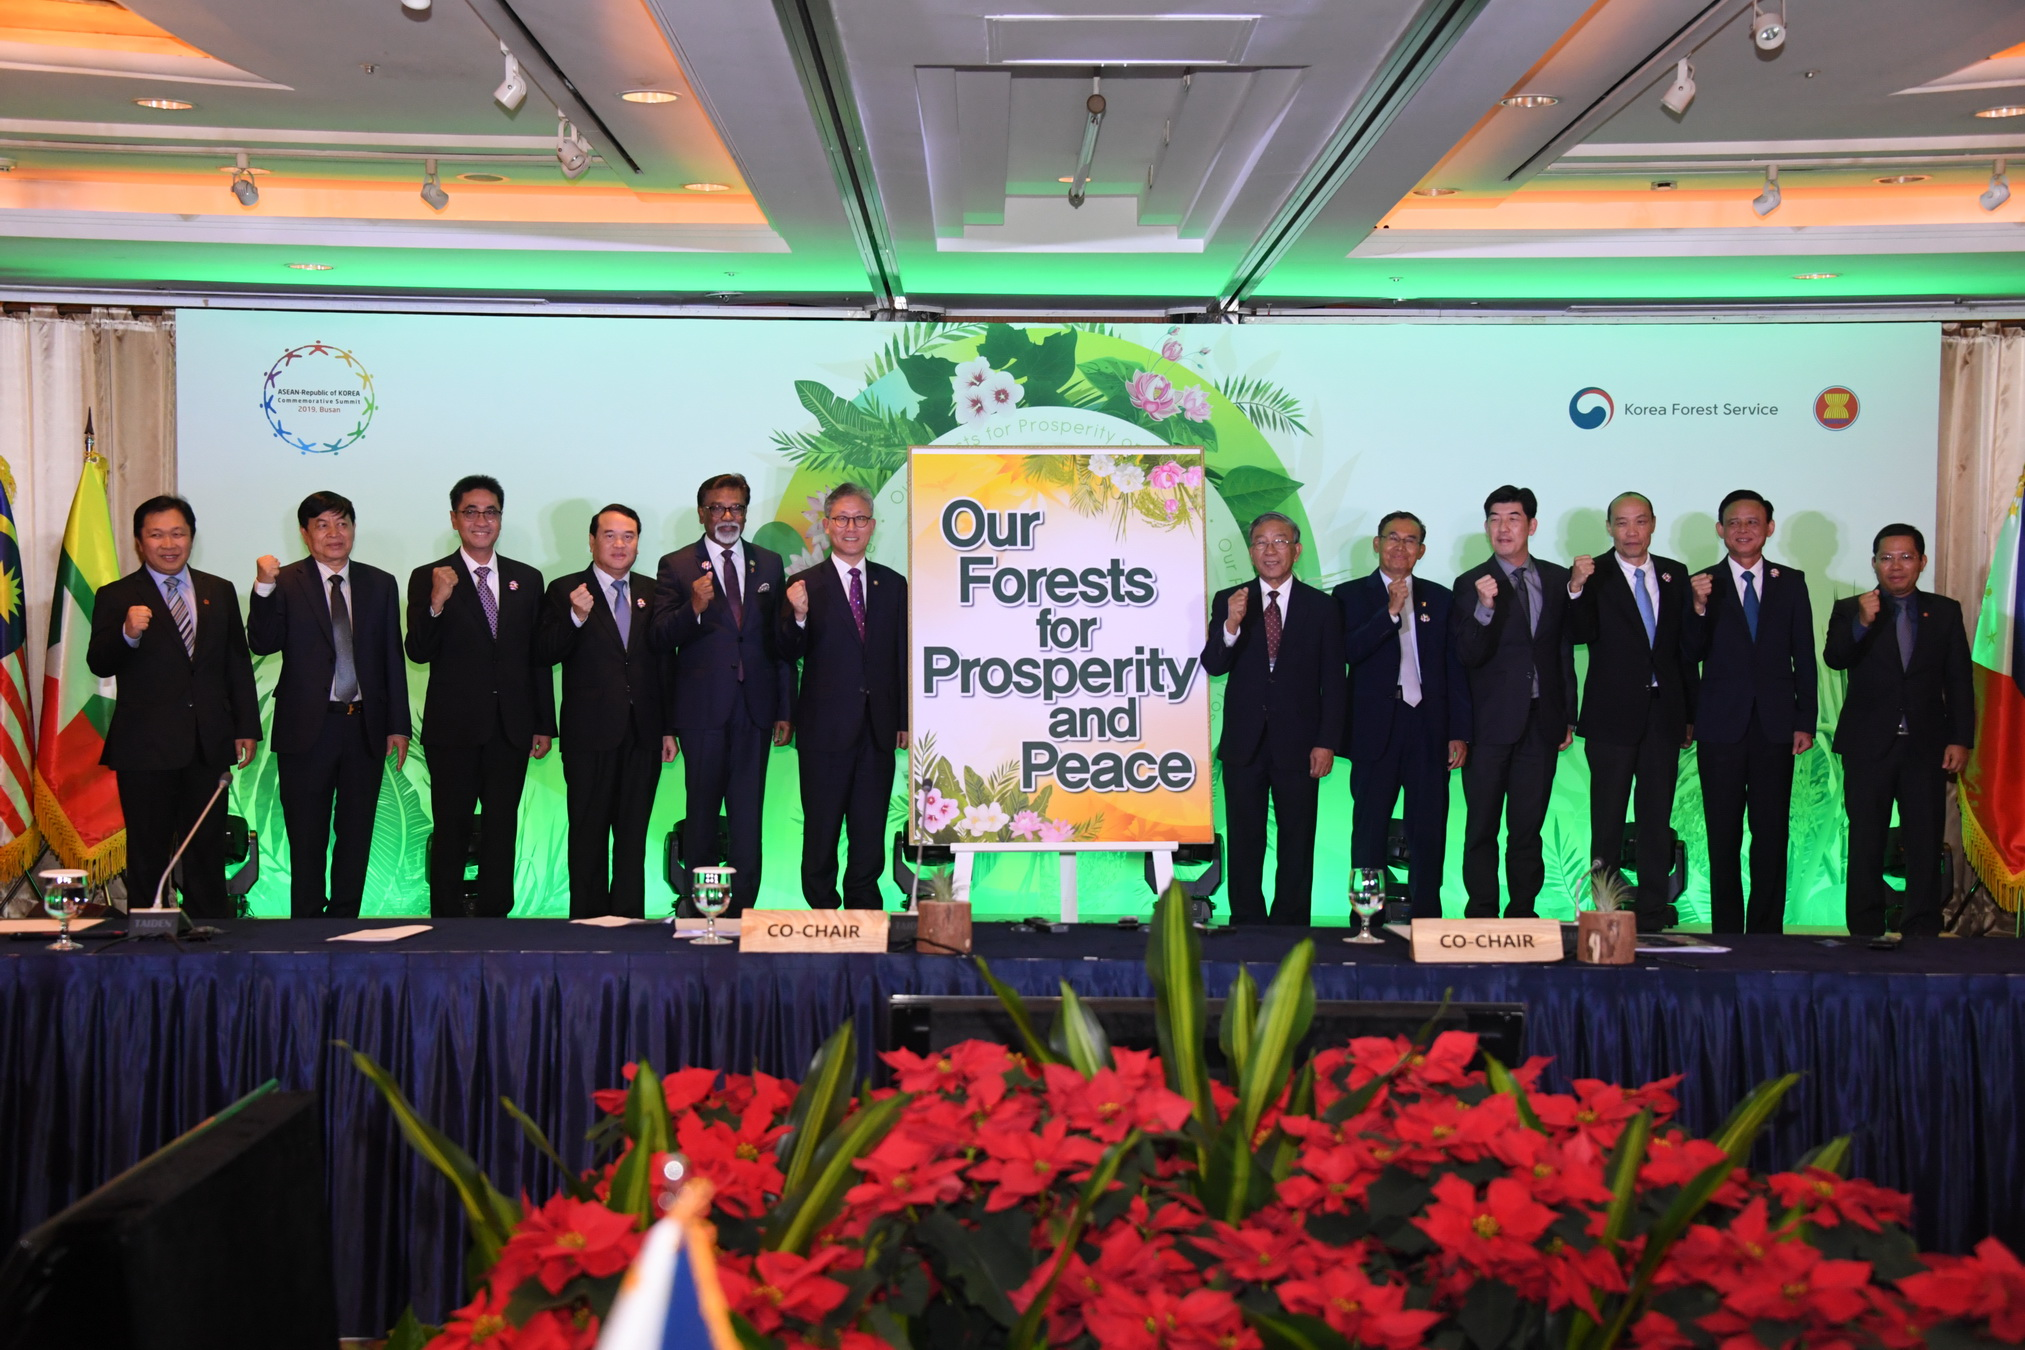 ASEAN-ROK High Level Meeting on Forestry 2019 이미지3